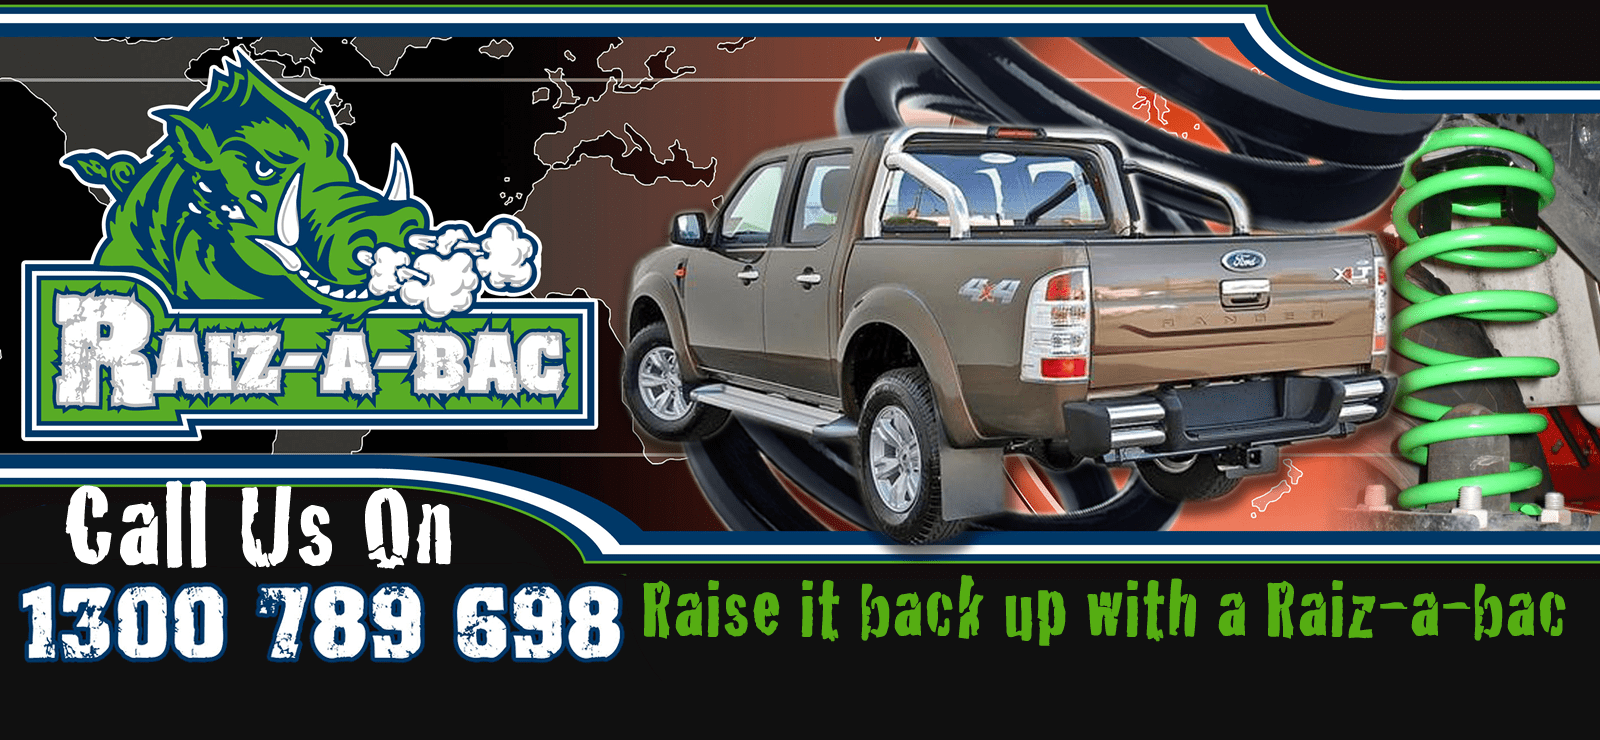 Thank You| Raiz-a-bac Suspension kits Canberra